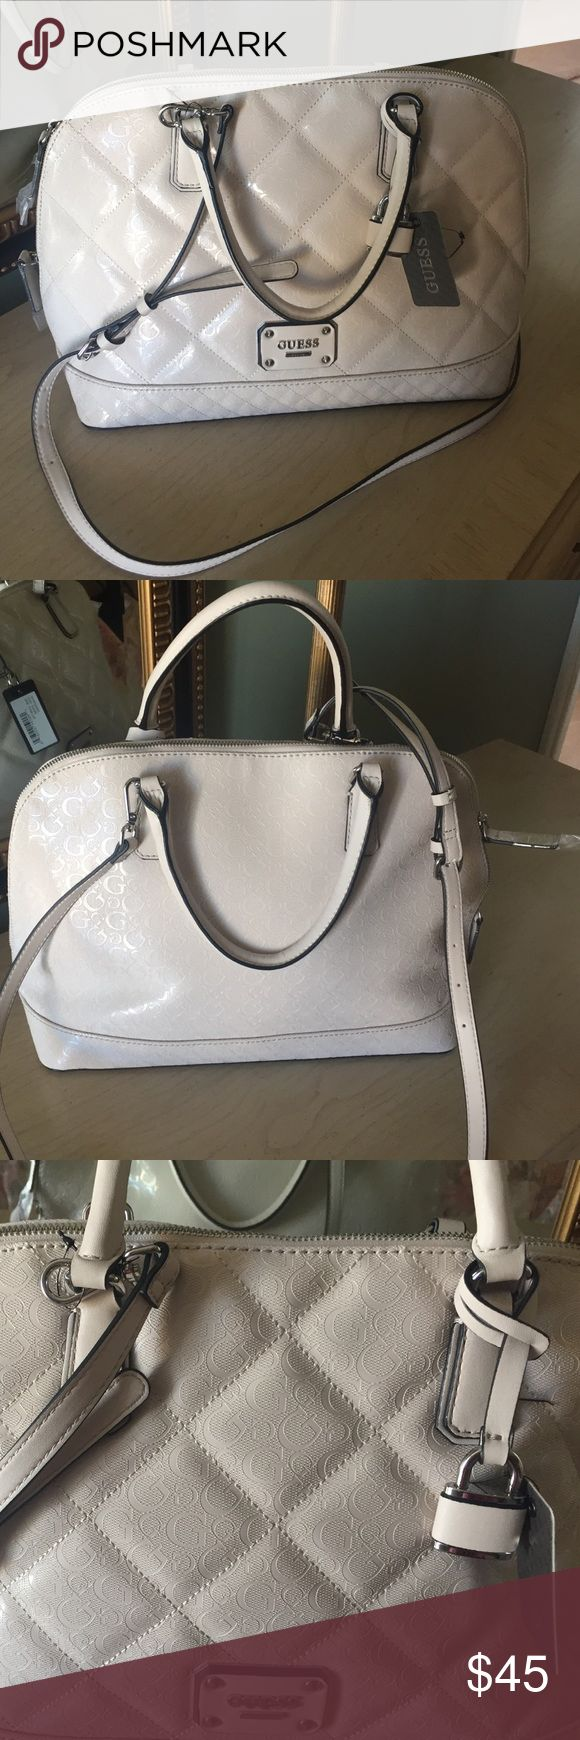 Guess satchel Handbag Brand new with tags satchel Handbag cream color beautiful. This is authentic bag great quality. Check online to see how much this bag sells for Guess Bags Satchels